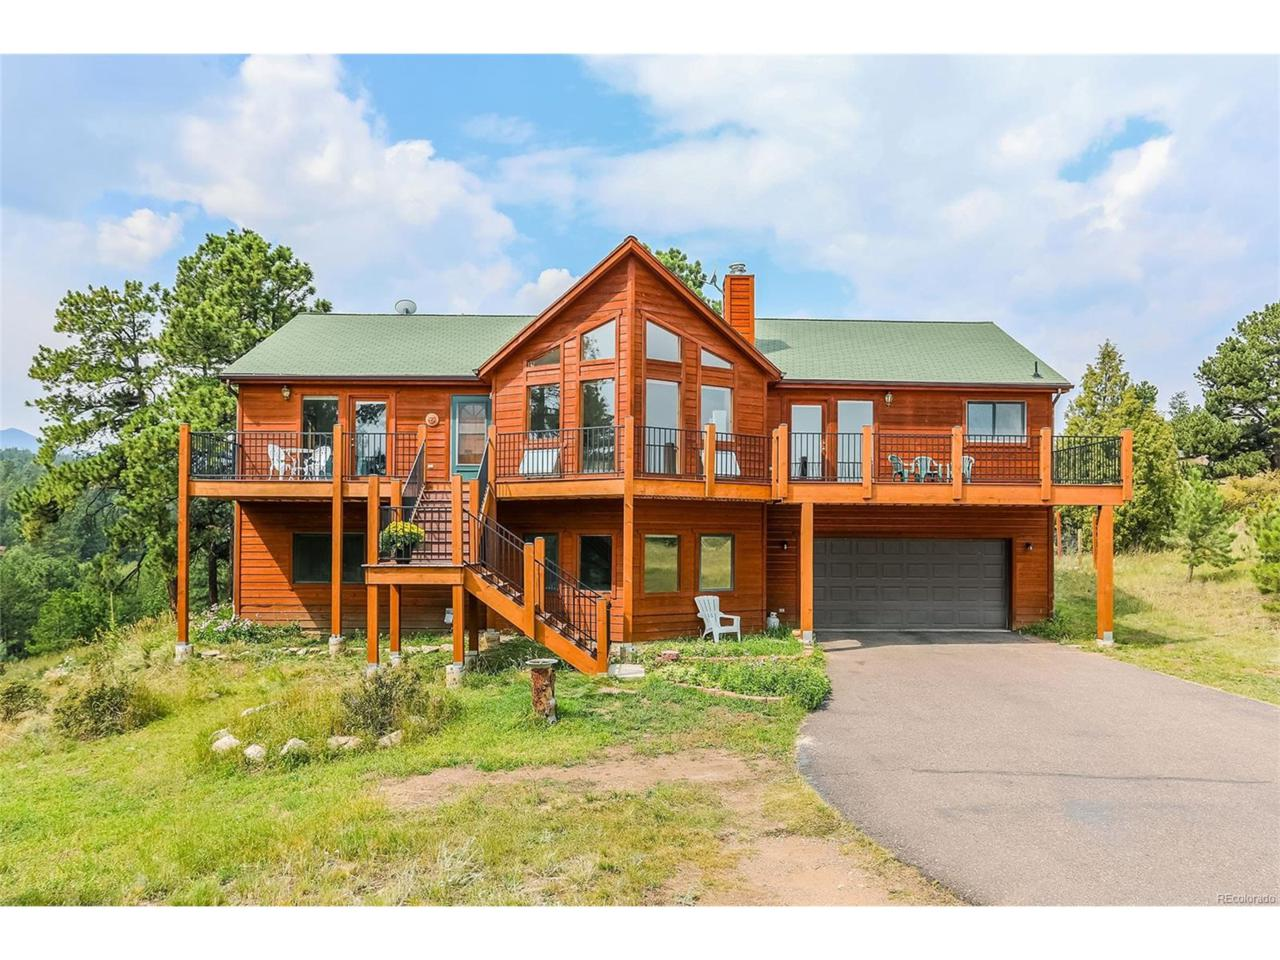 821 Yellow Pine Drive, Bailey, CO 80421 (MLS #2978658) :: 8z Real Estate